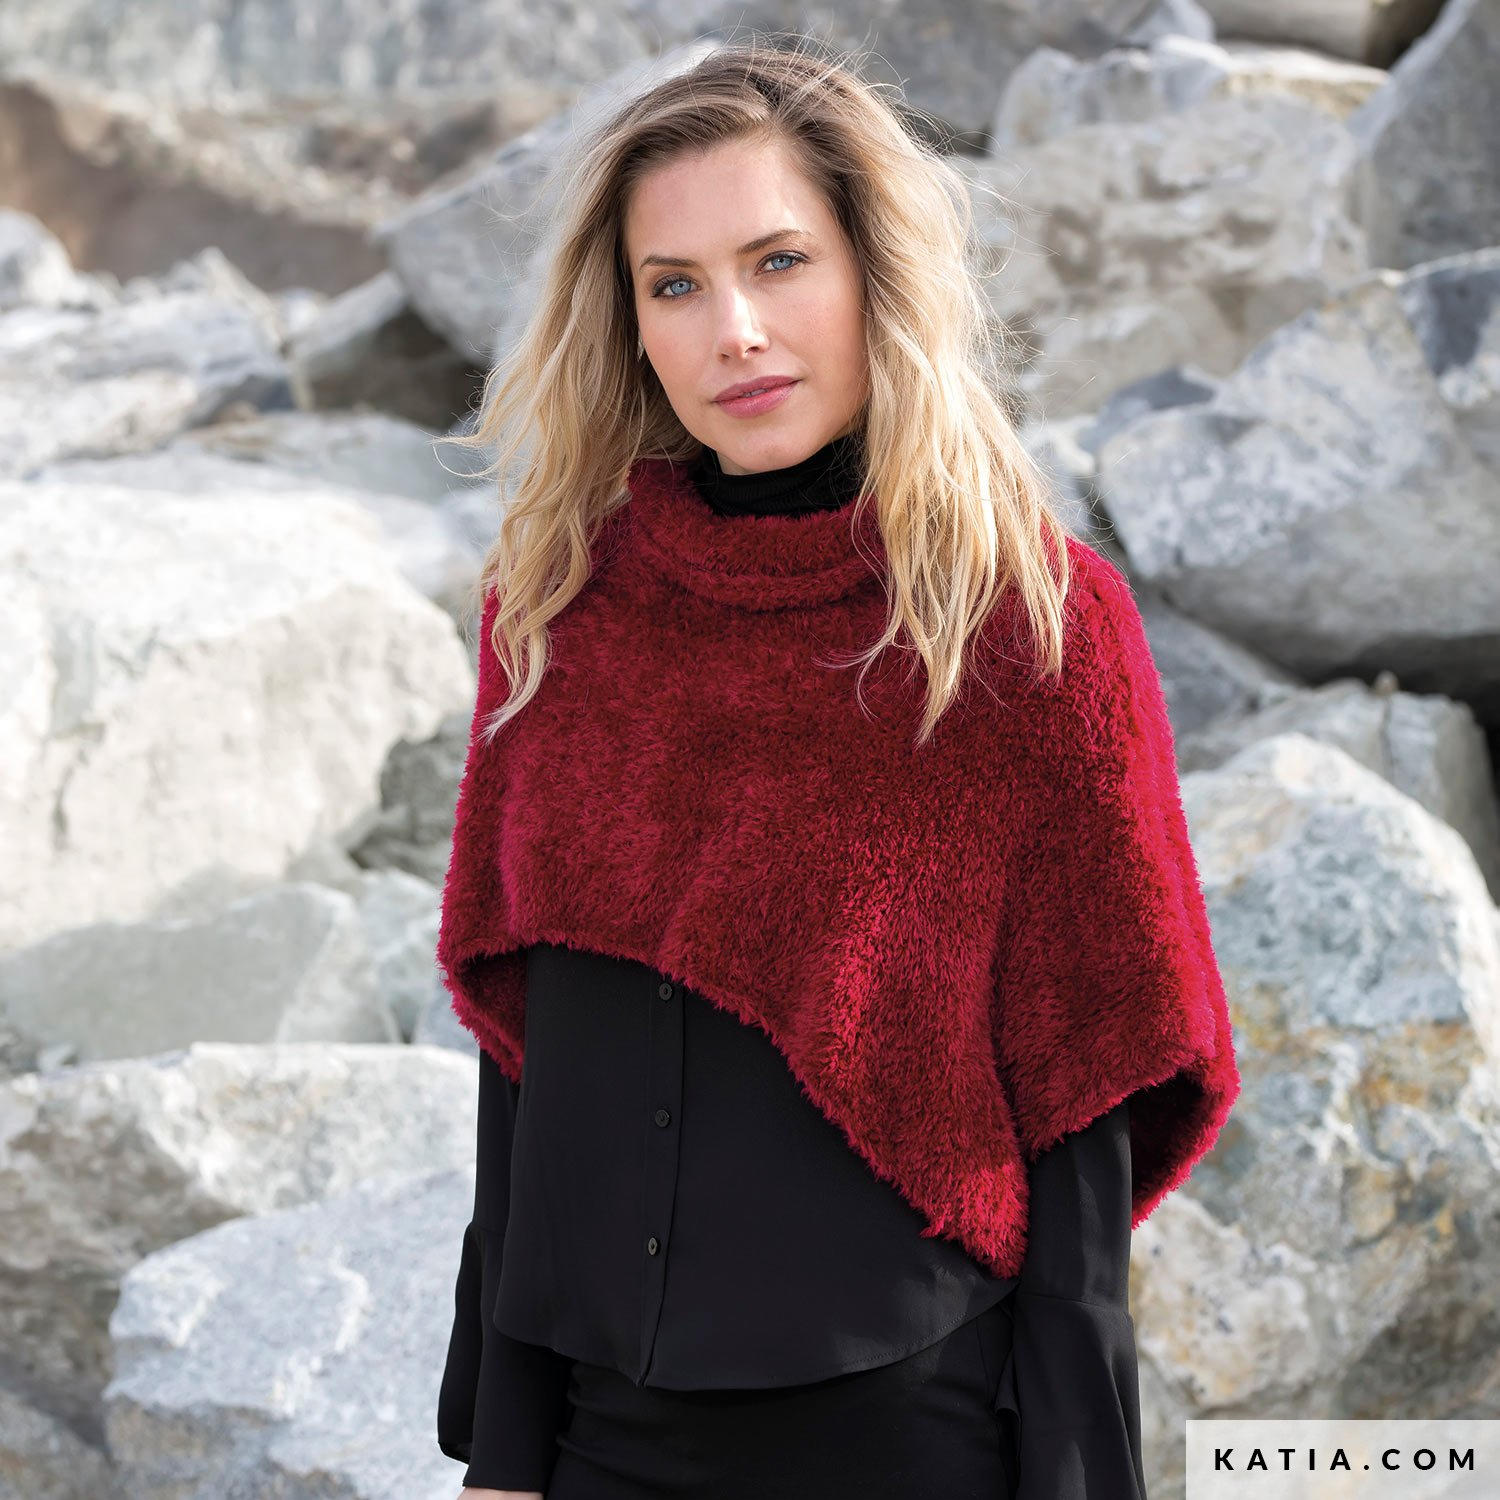 ff5a41704 Poncho - Woman - Autumn / Winter - models & patterns | Katia.com